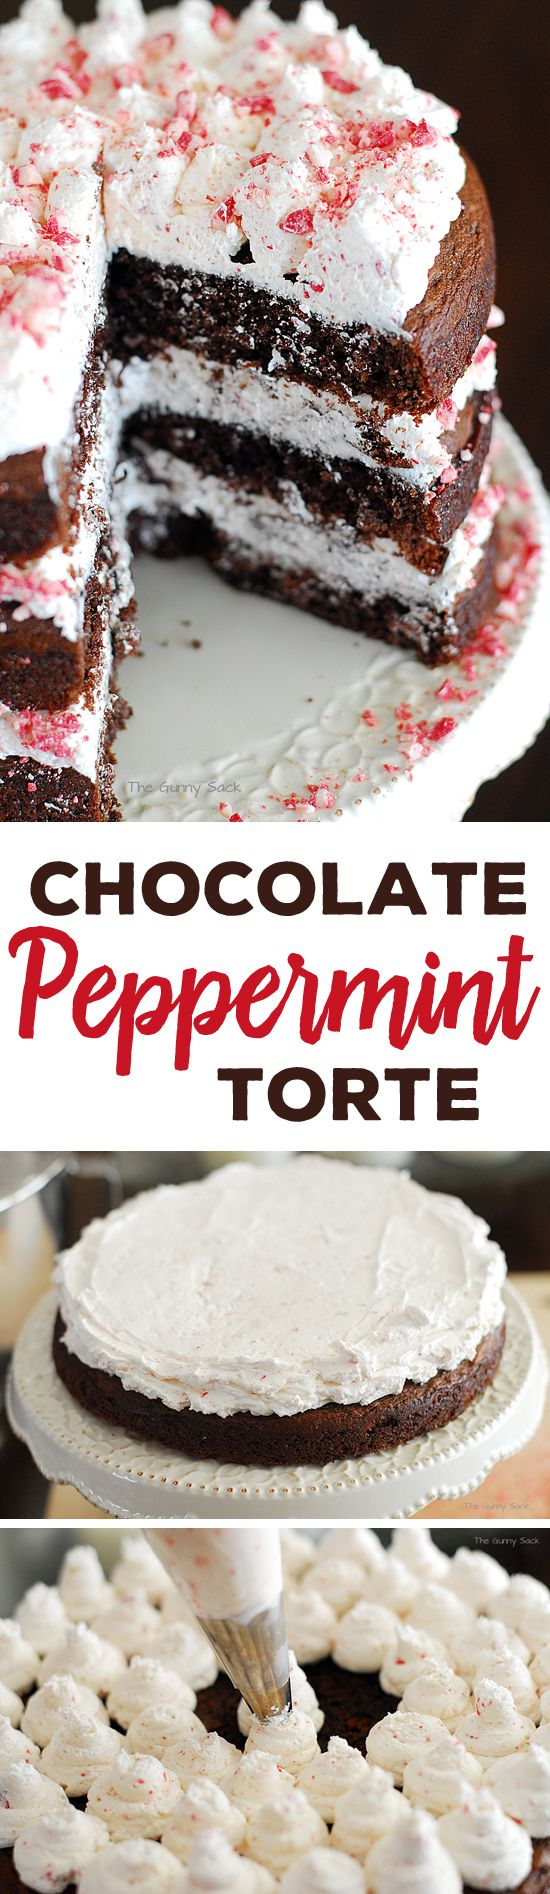 Chocolate Peppermint Torte is a delicious holiday layer cake that is perfect for Christmas parties!